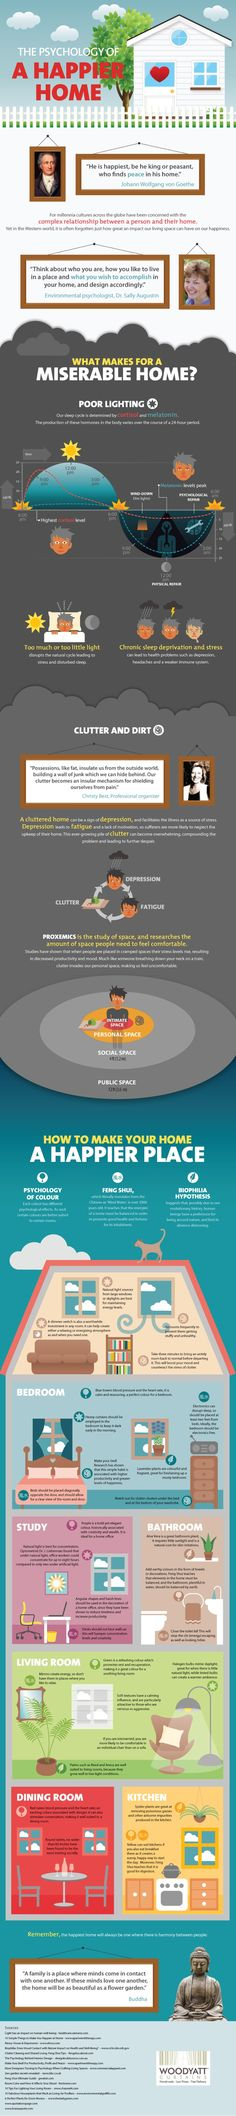 The Psychology of a Happier Home (and we're not talking about relationships)